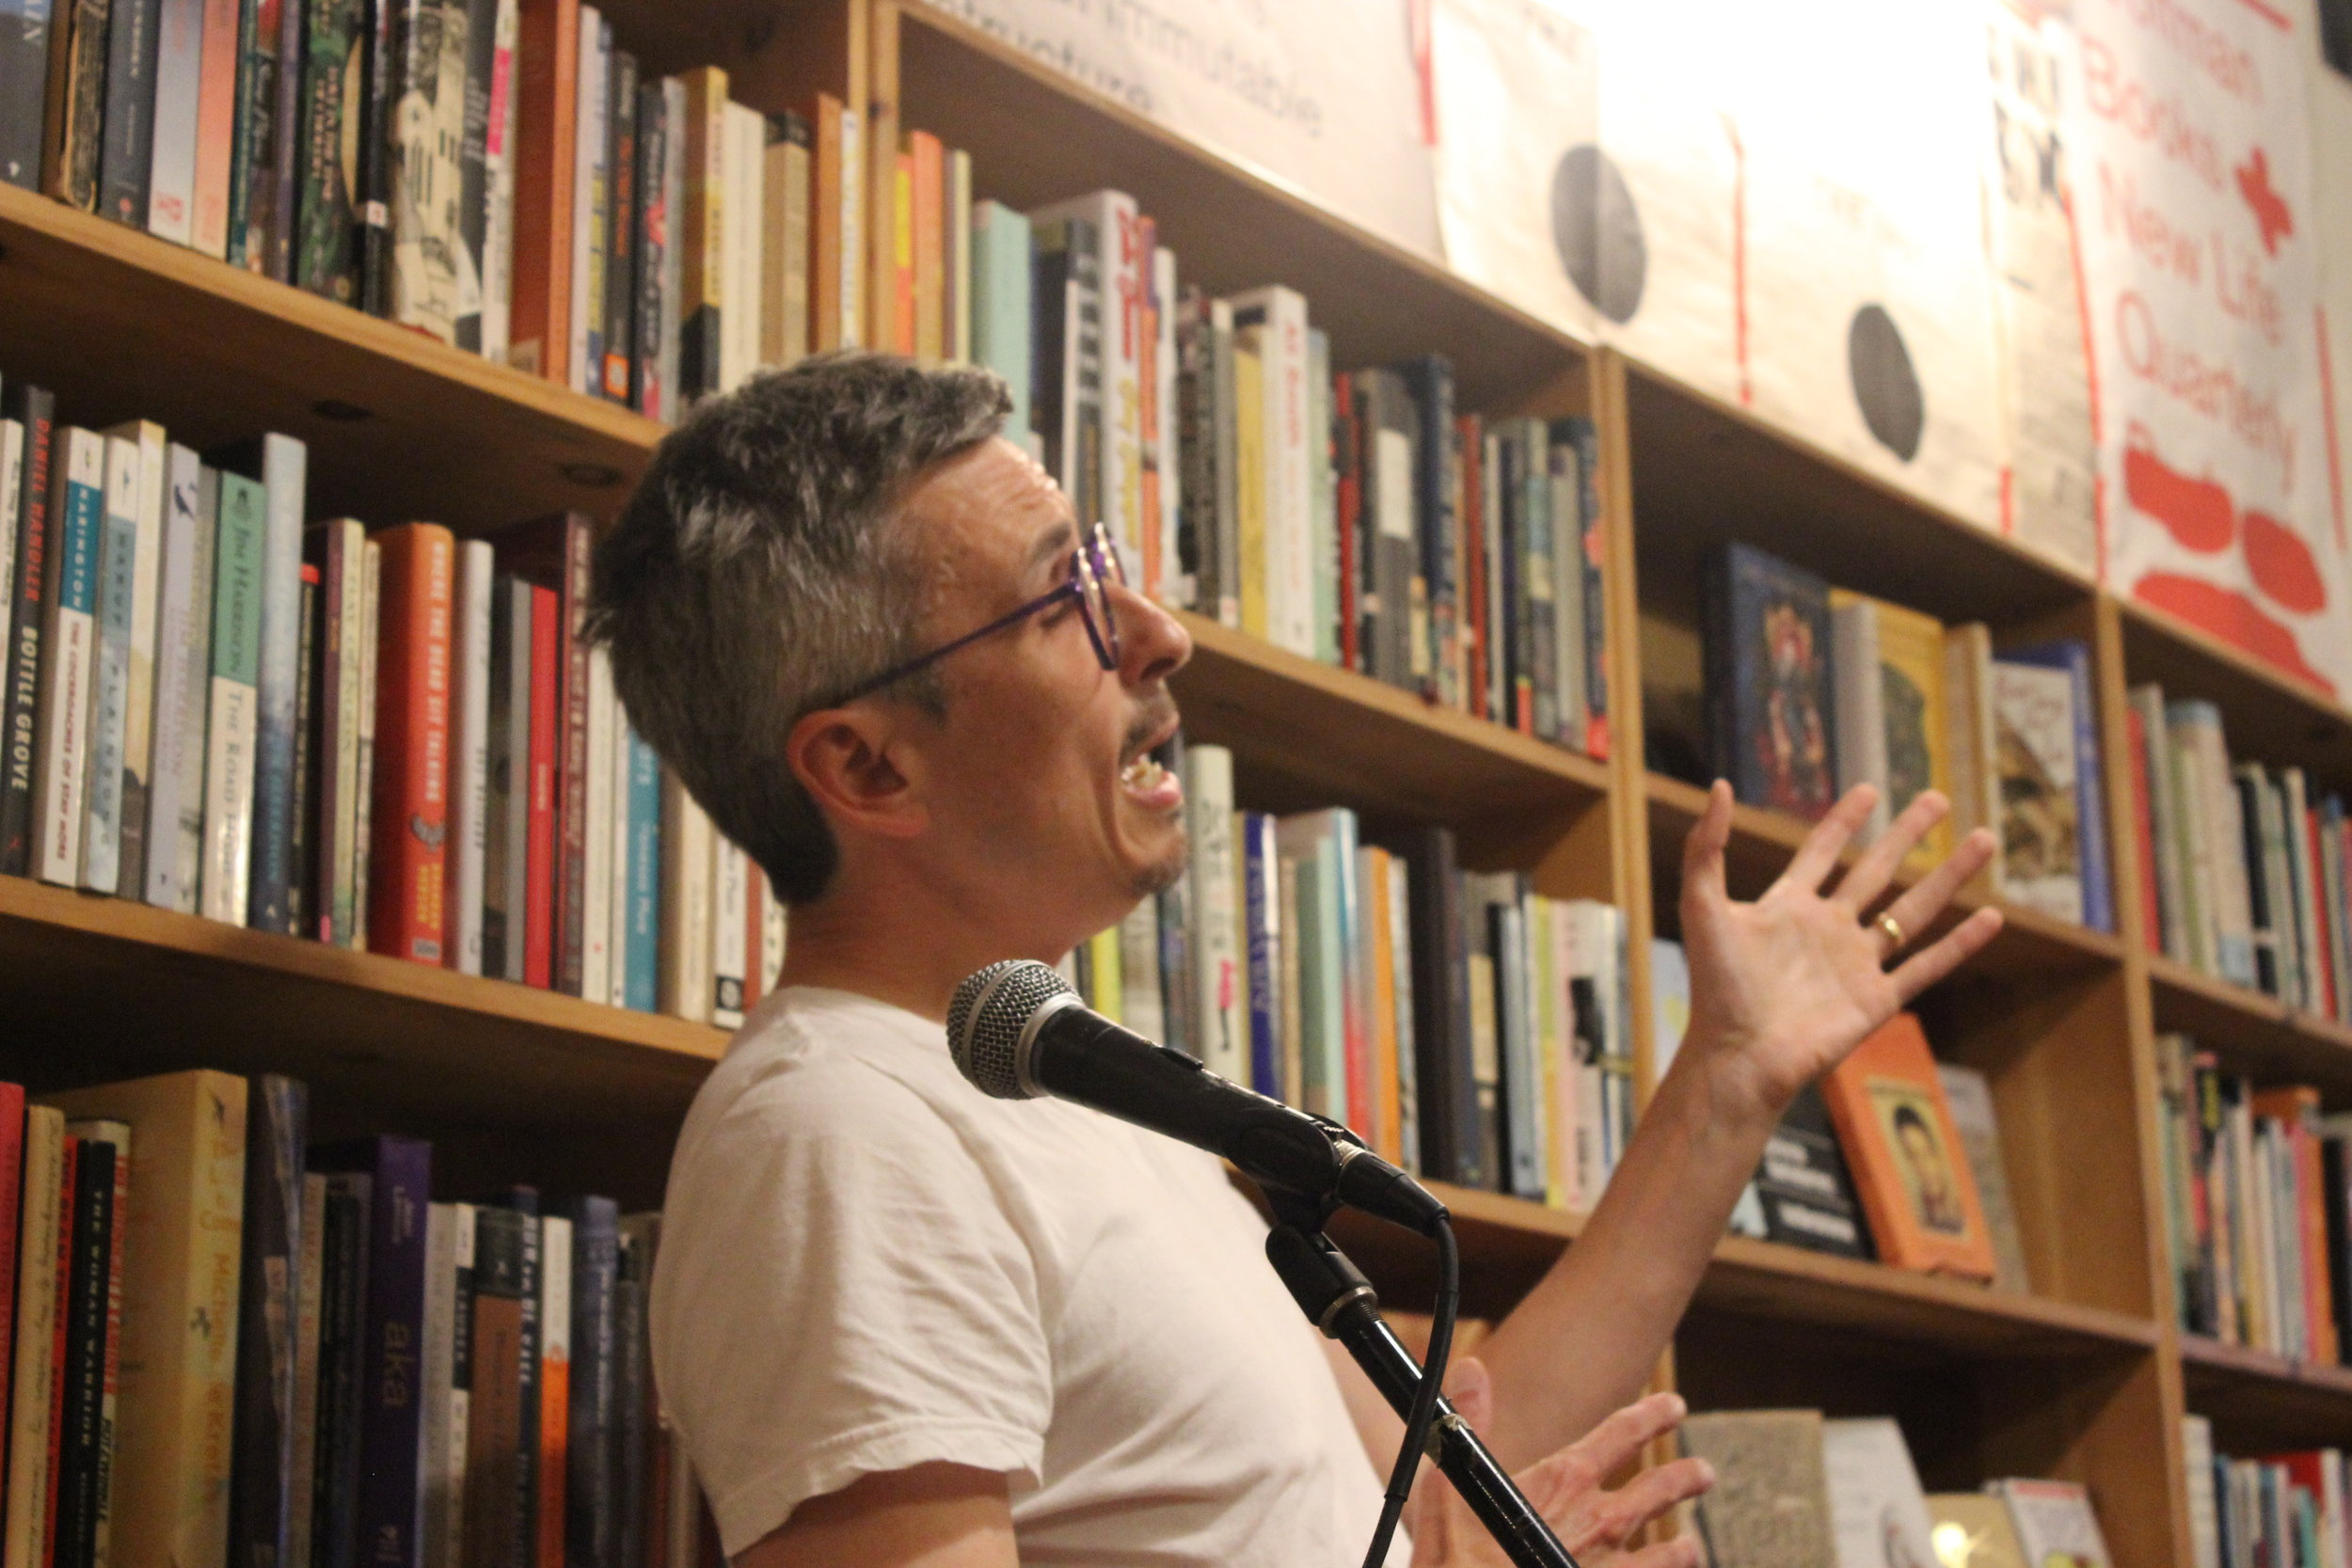 Julien Poirier REads Poetry at Wolfman books in Downtown Oakland in a reading hosted by Sophia Dahlin on 8/18/20